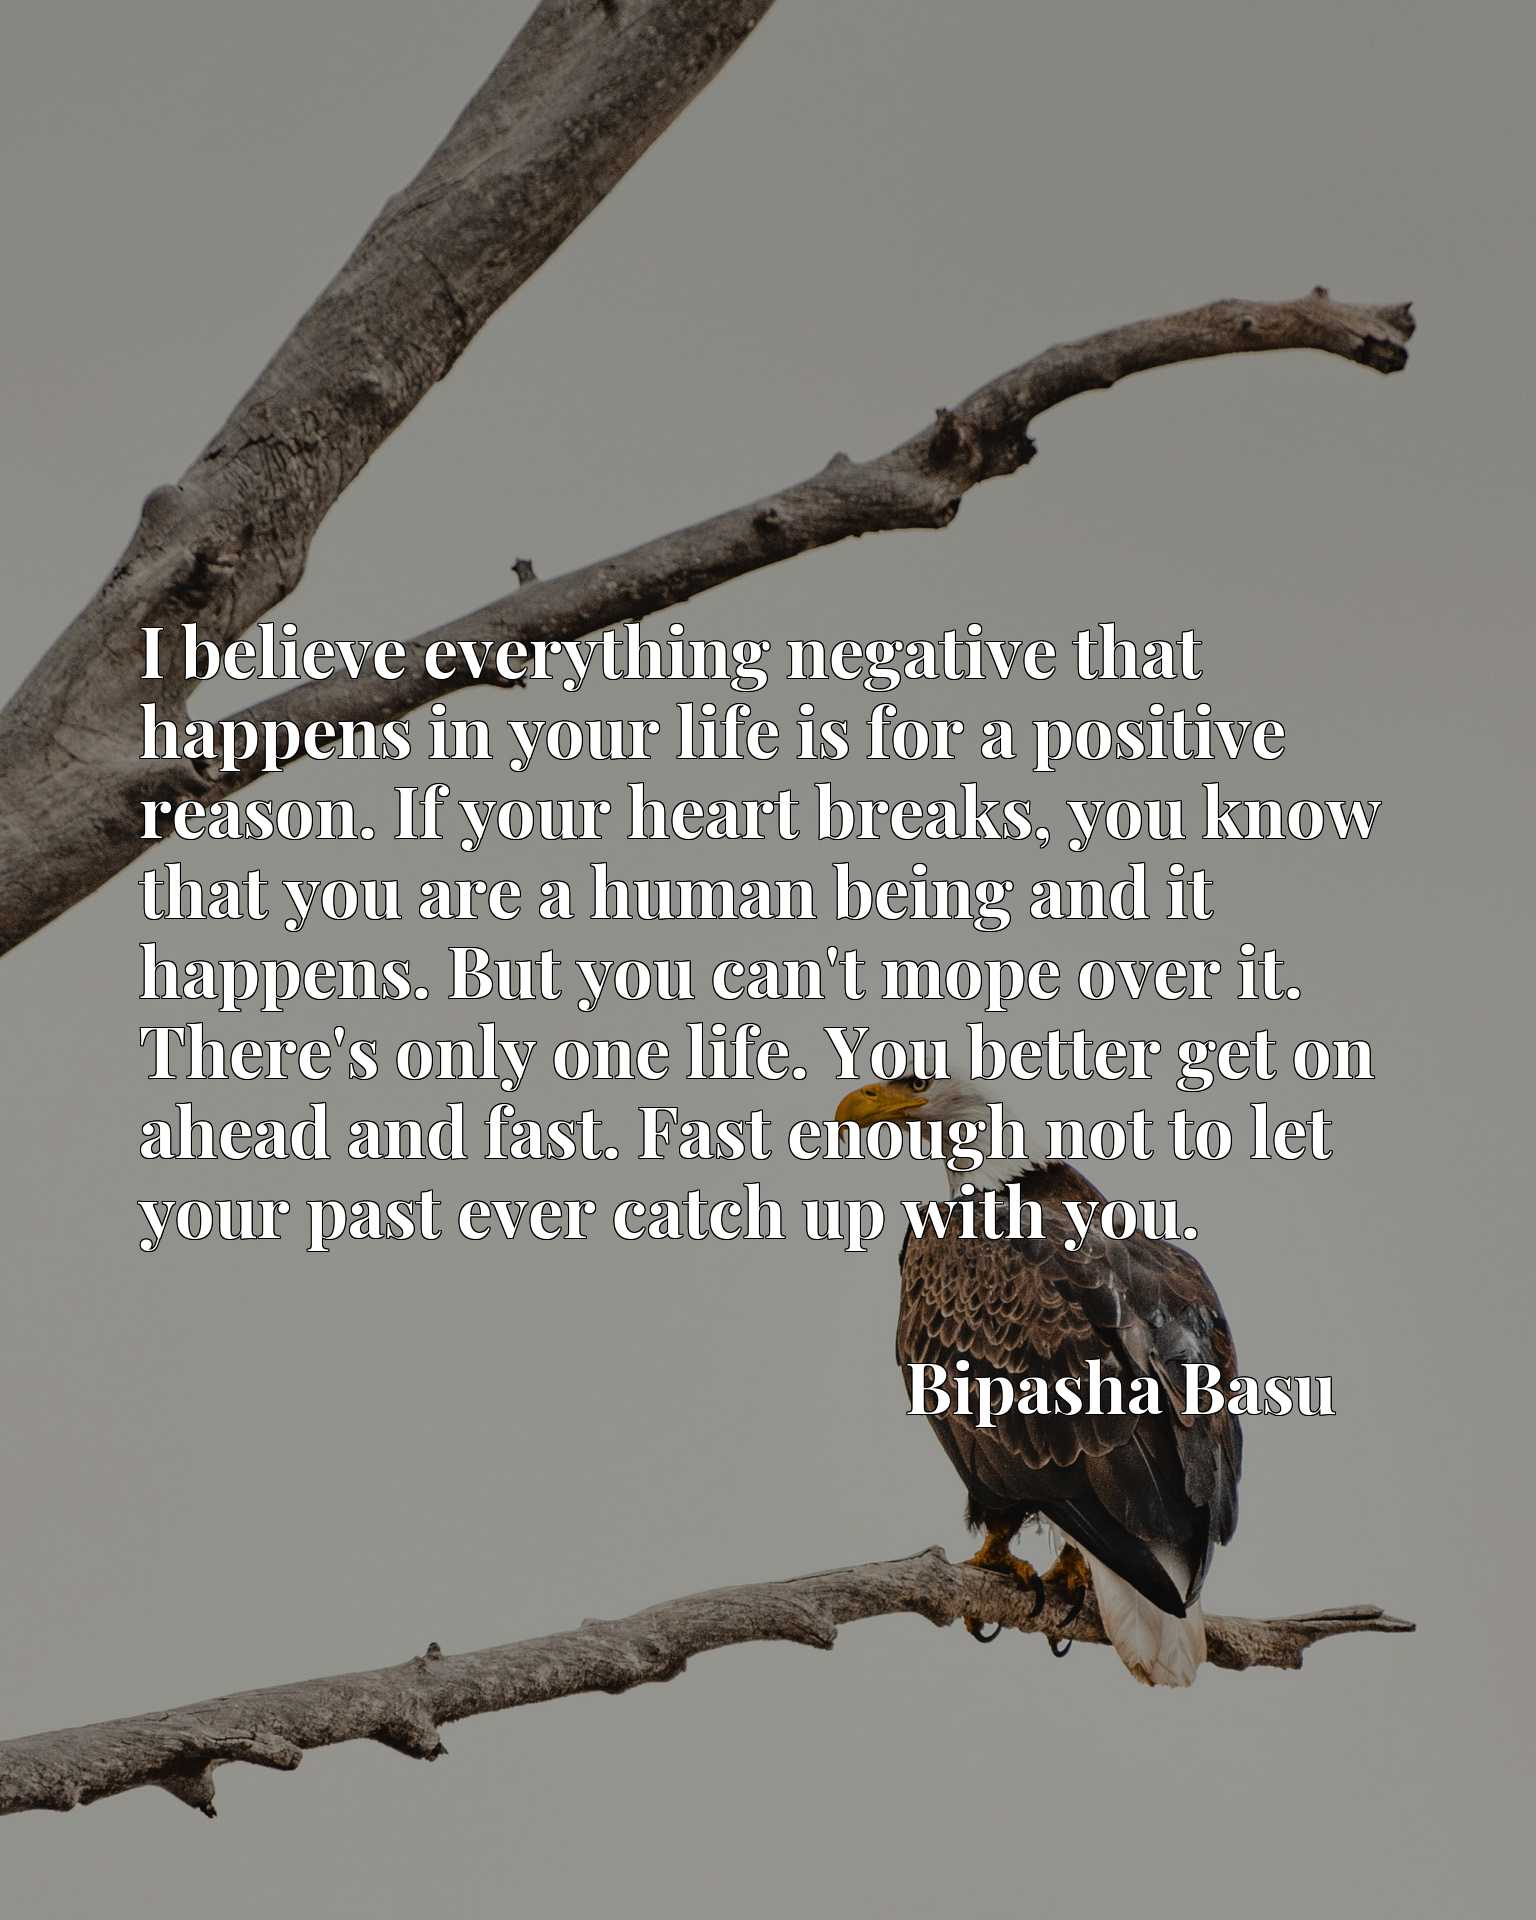 I believe everything negative that happens in your life is for a positive reason. If your heart breaks, you know that you are a human being and it happens. But you can't mope over it. There's only one life. You better get on ahead and fast. Fast enough not to let your past ever catch up with you.